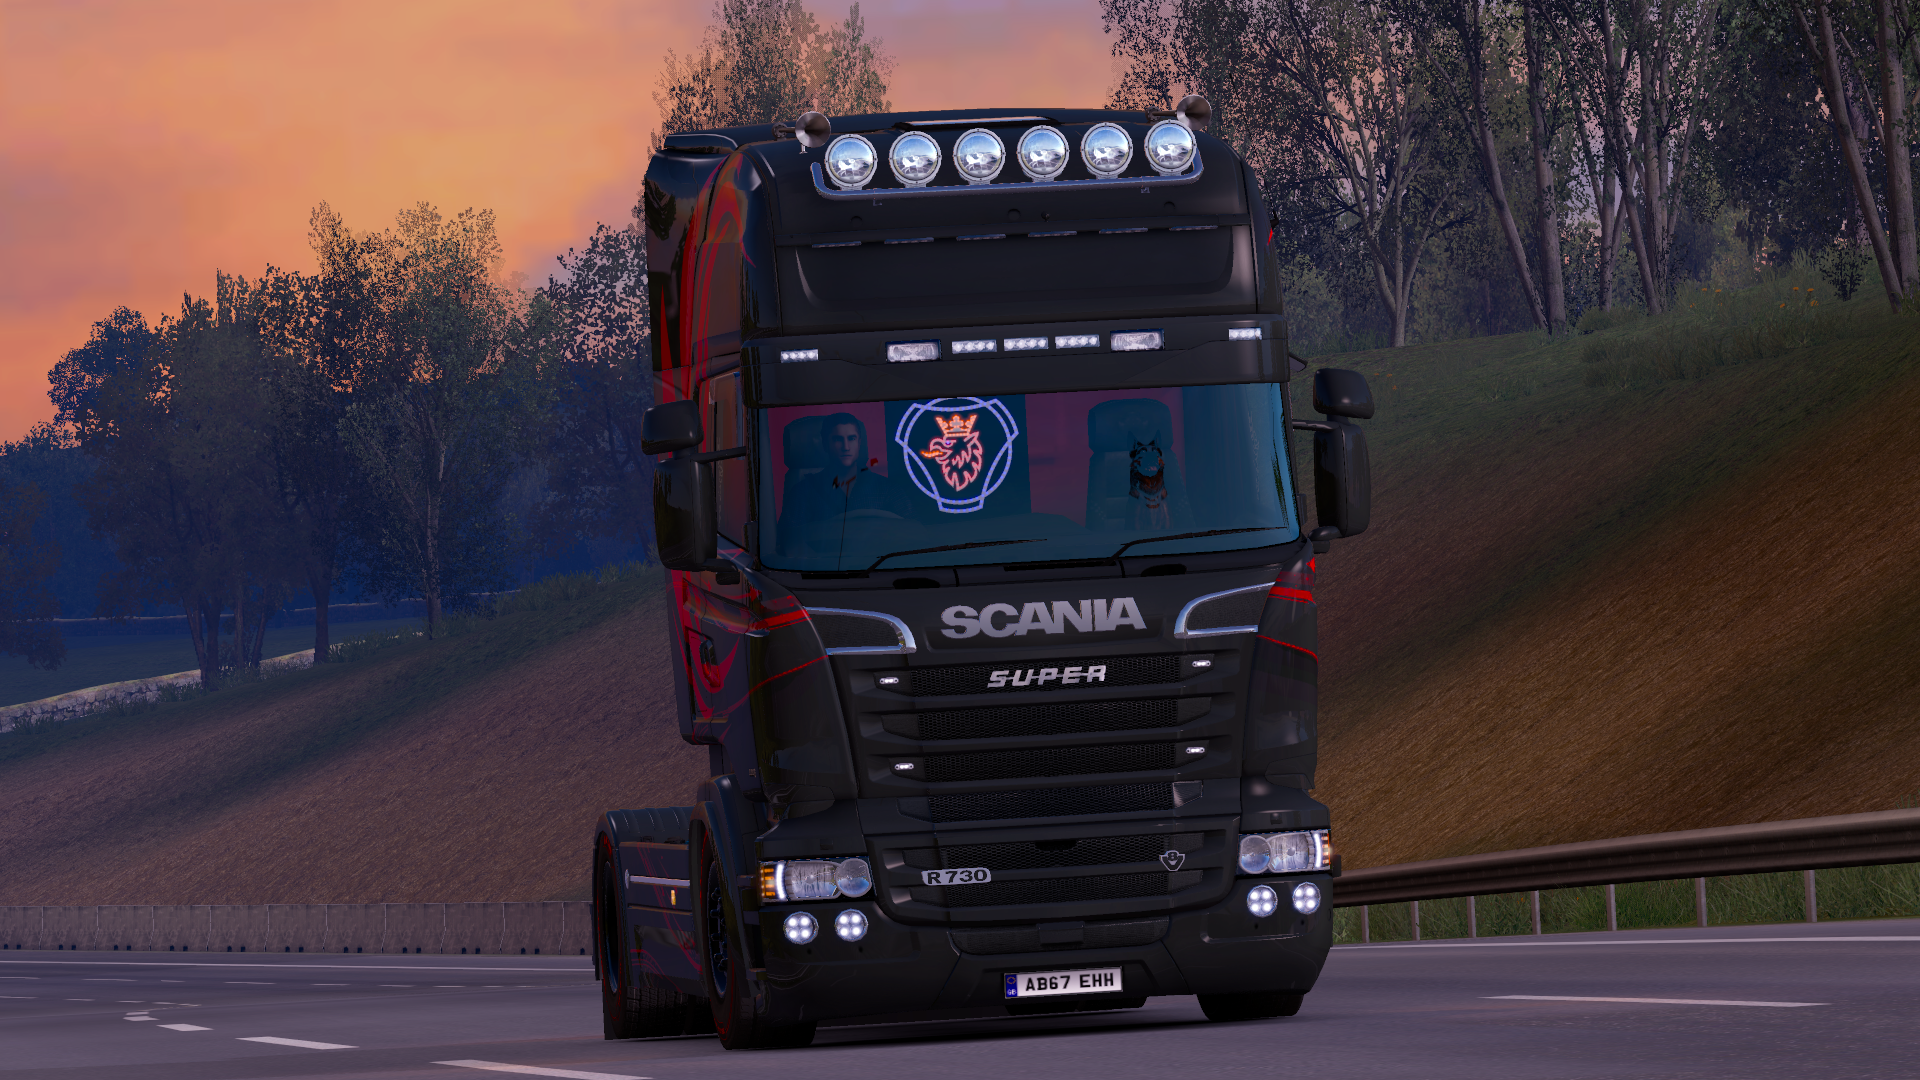 ets2_20180526_222240_00.png